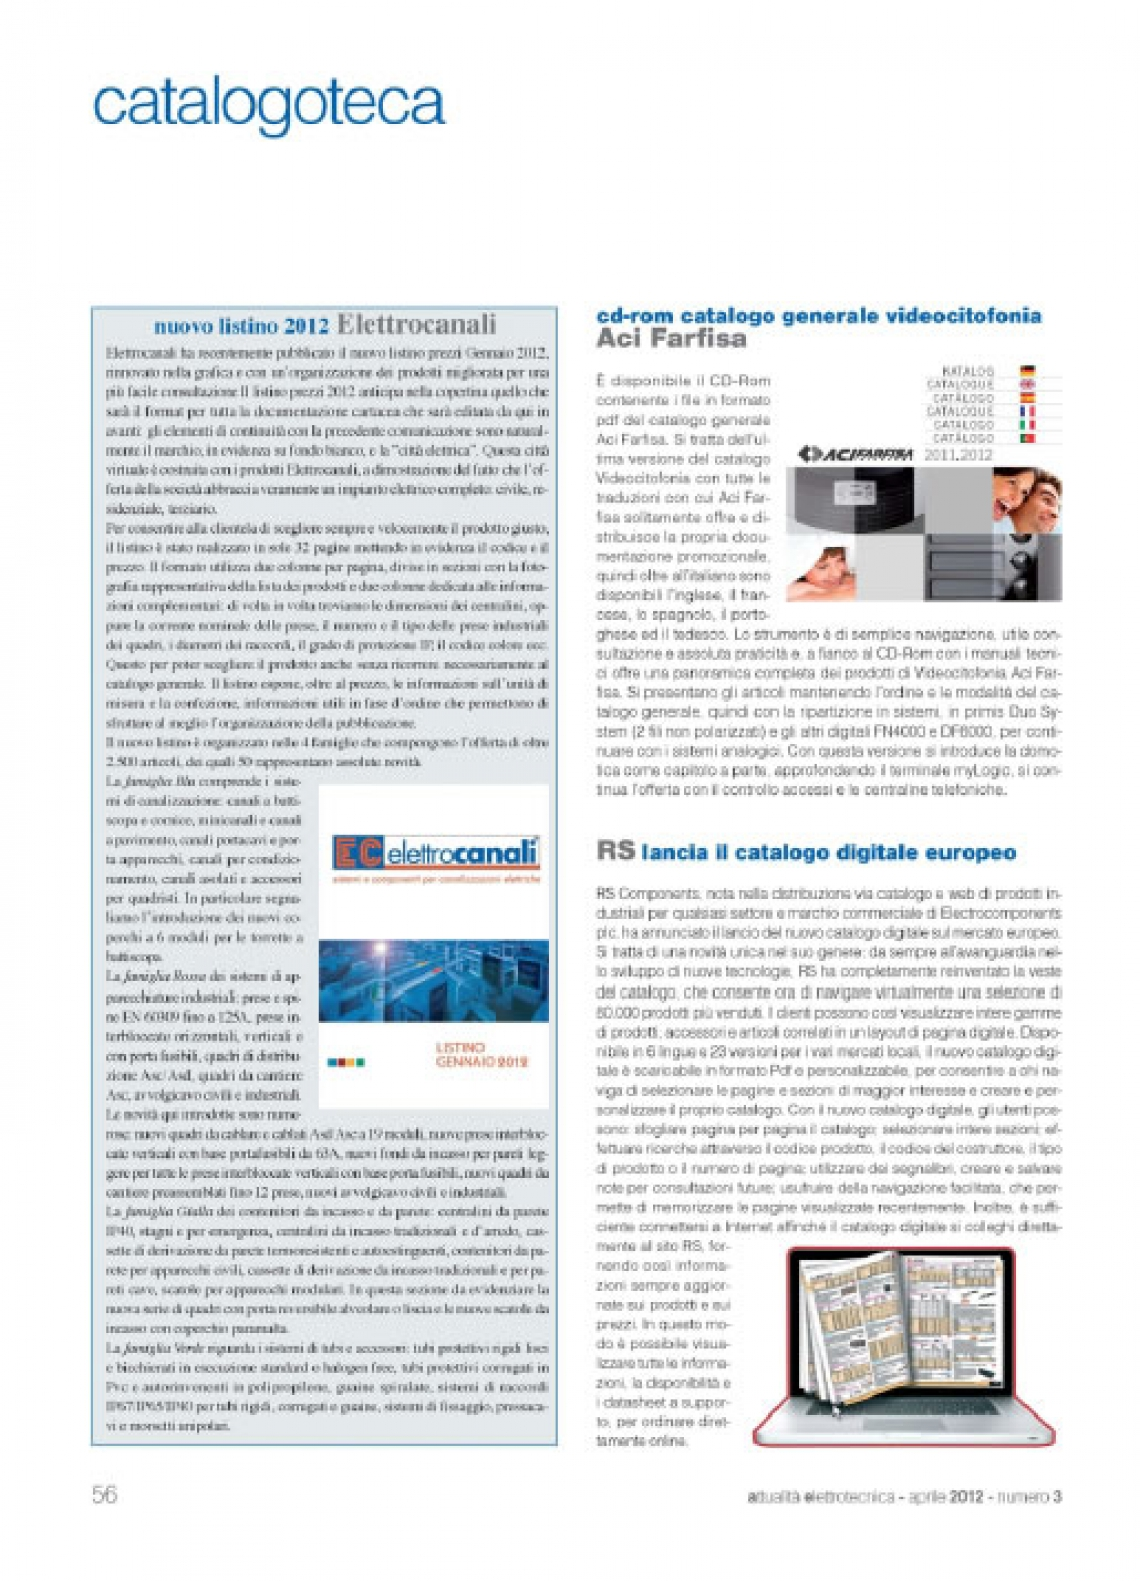 Catalogo Aci Farfisa su cd rom